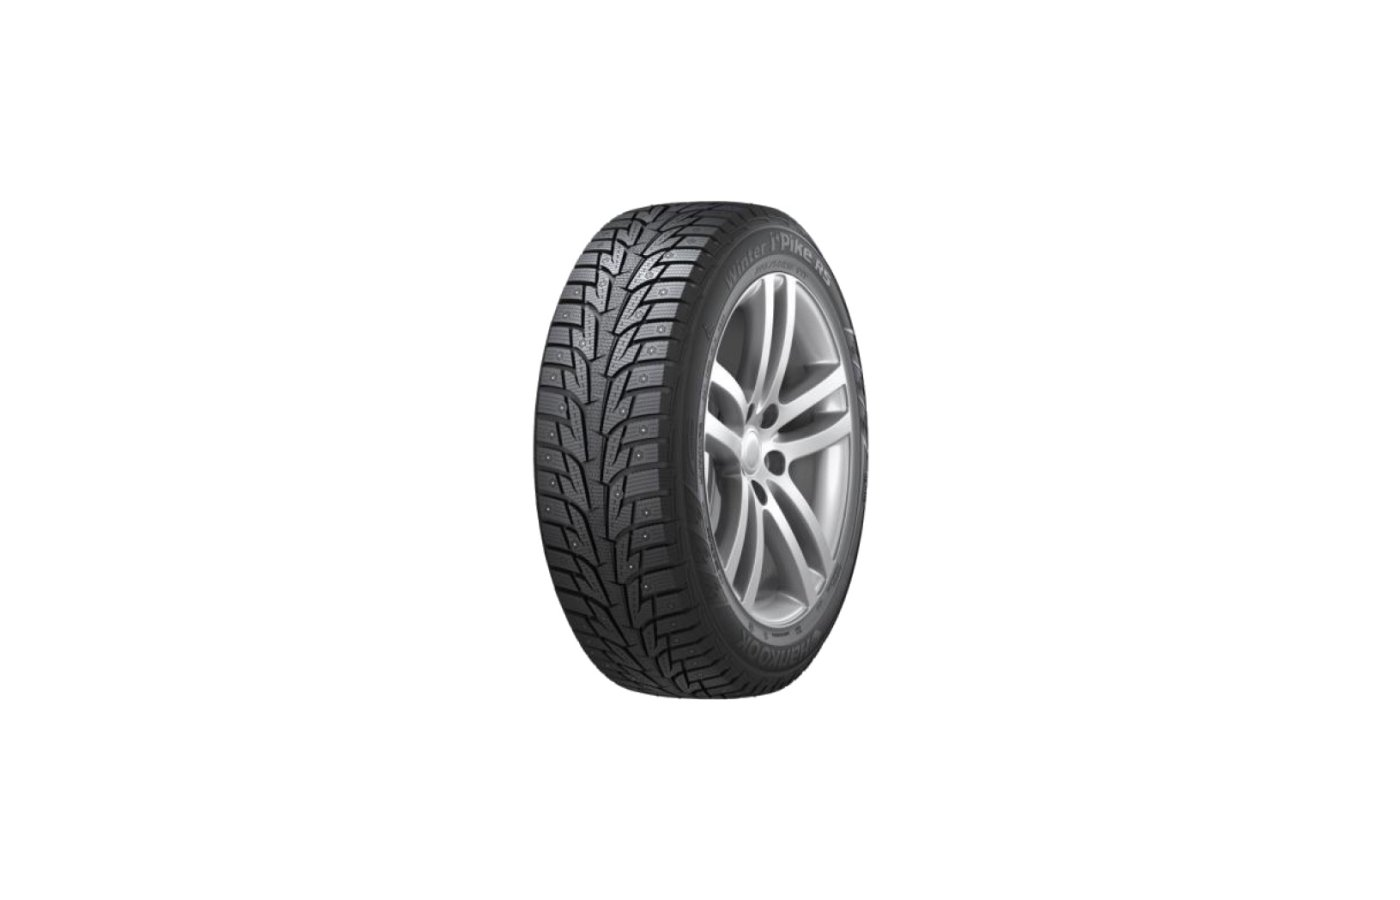 Шина Hankook Winter i*Pike RS W419 205/60 R15 TL 91T шип